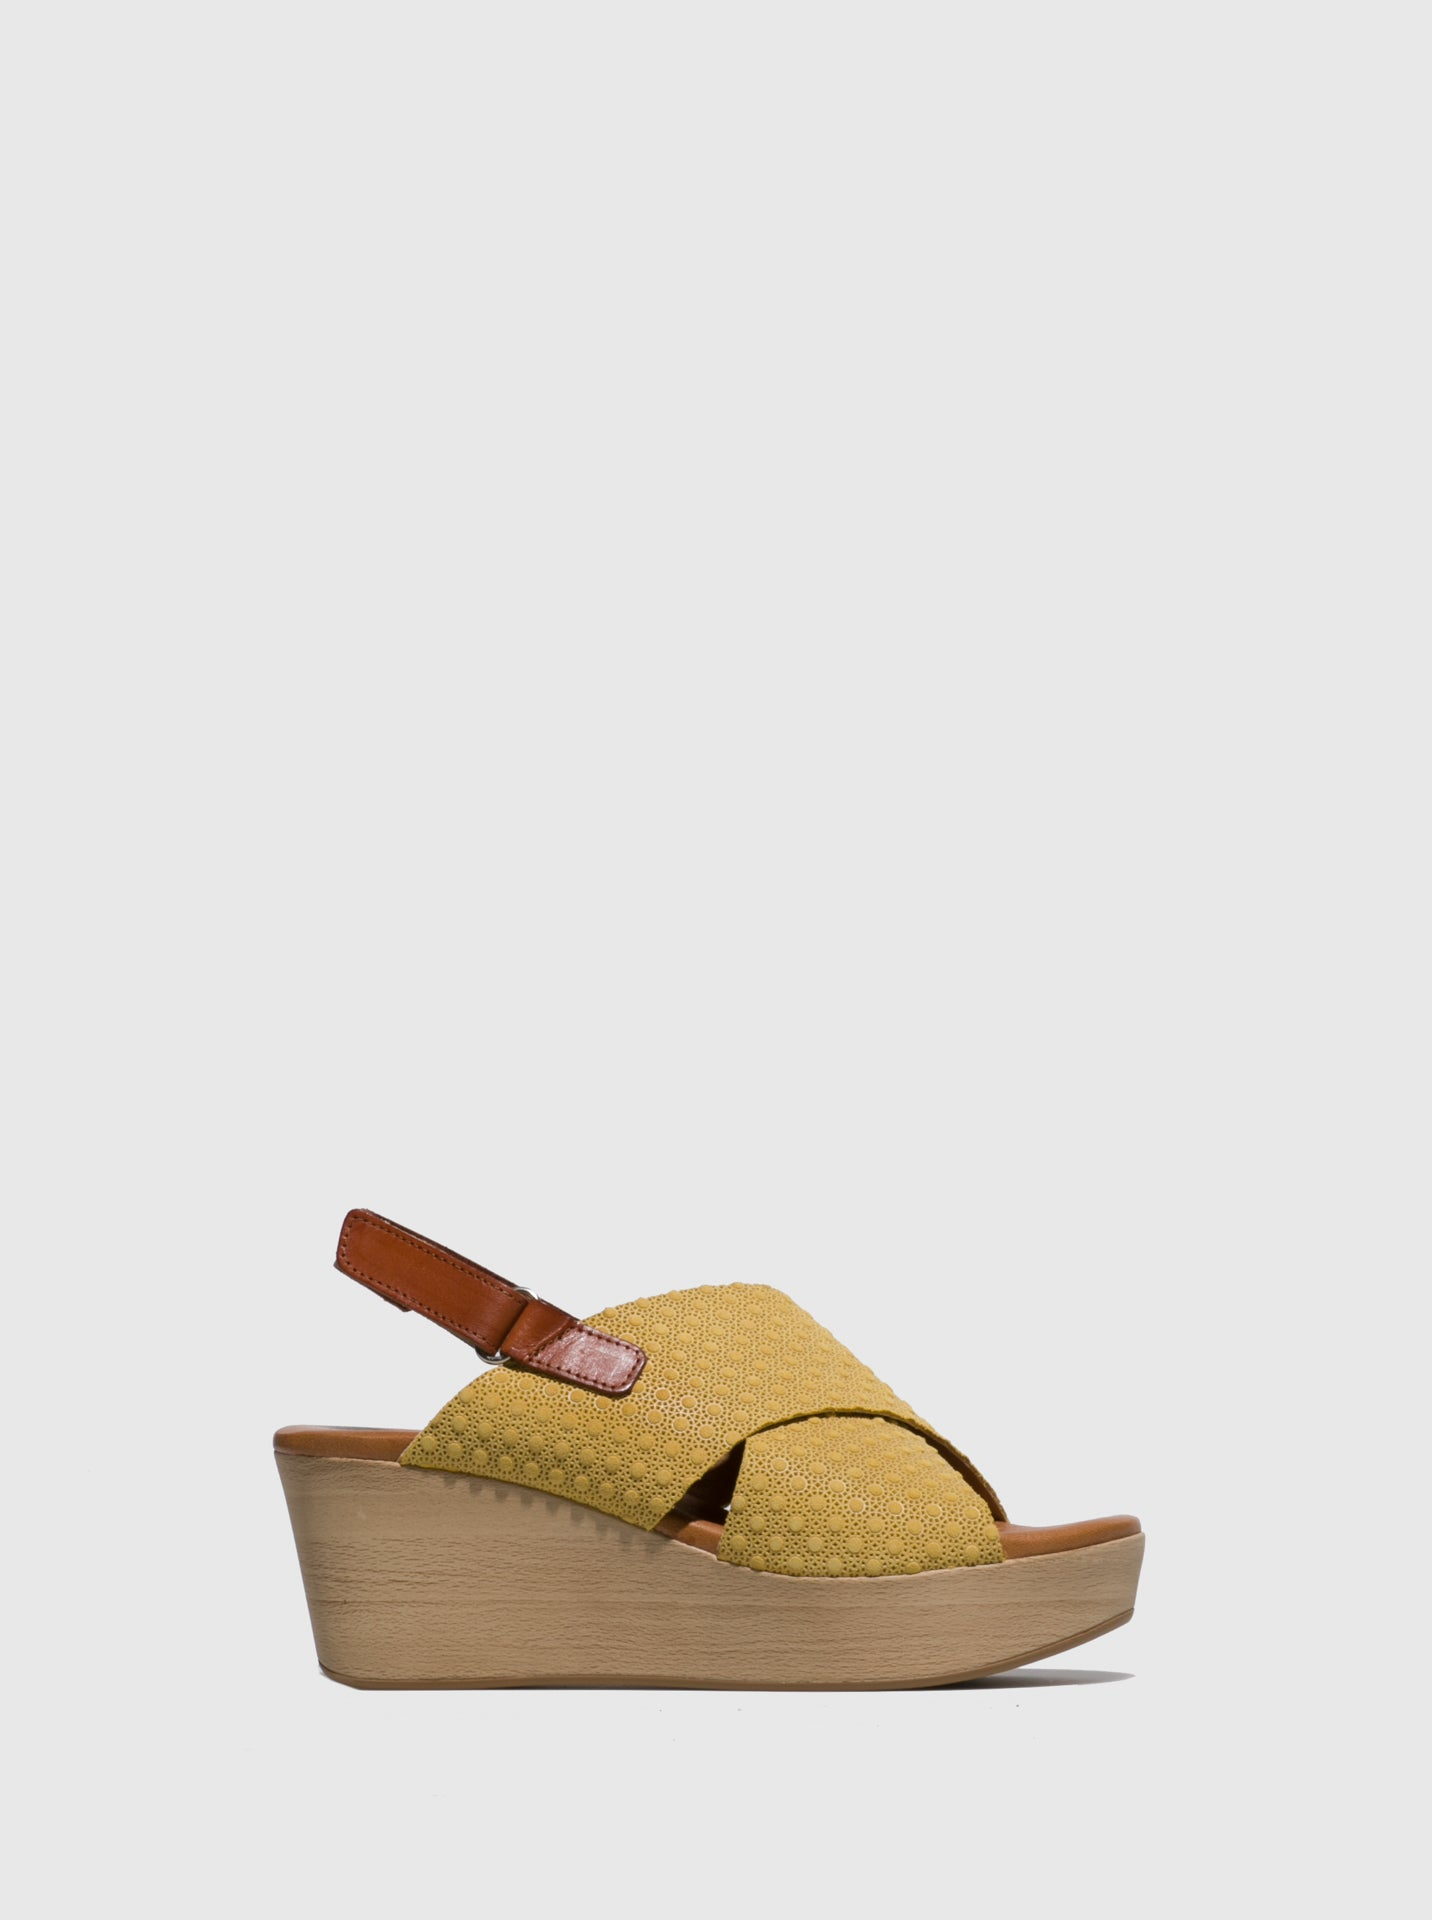 Sotoalto Yellow Wedge Sandals